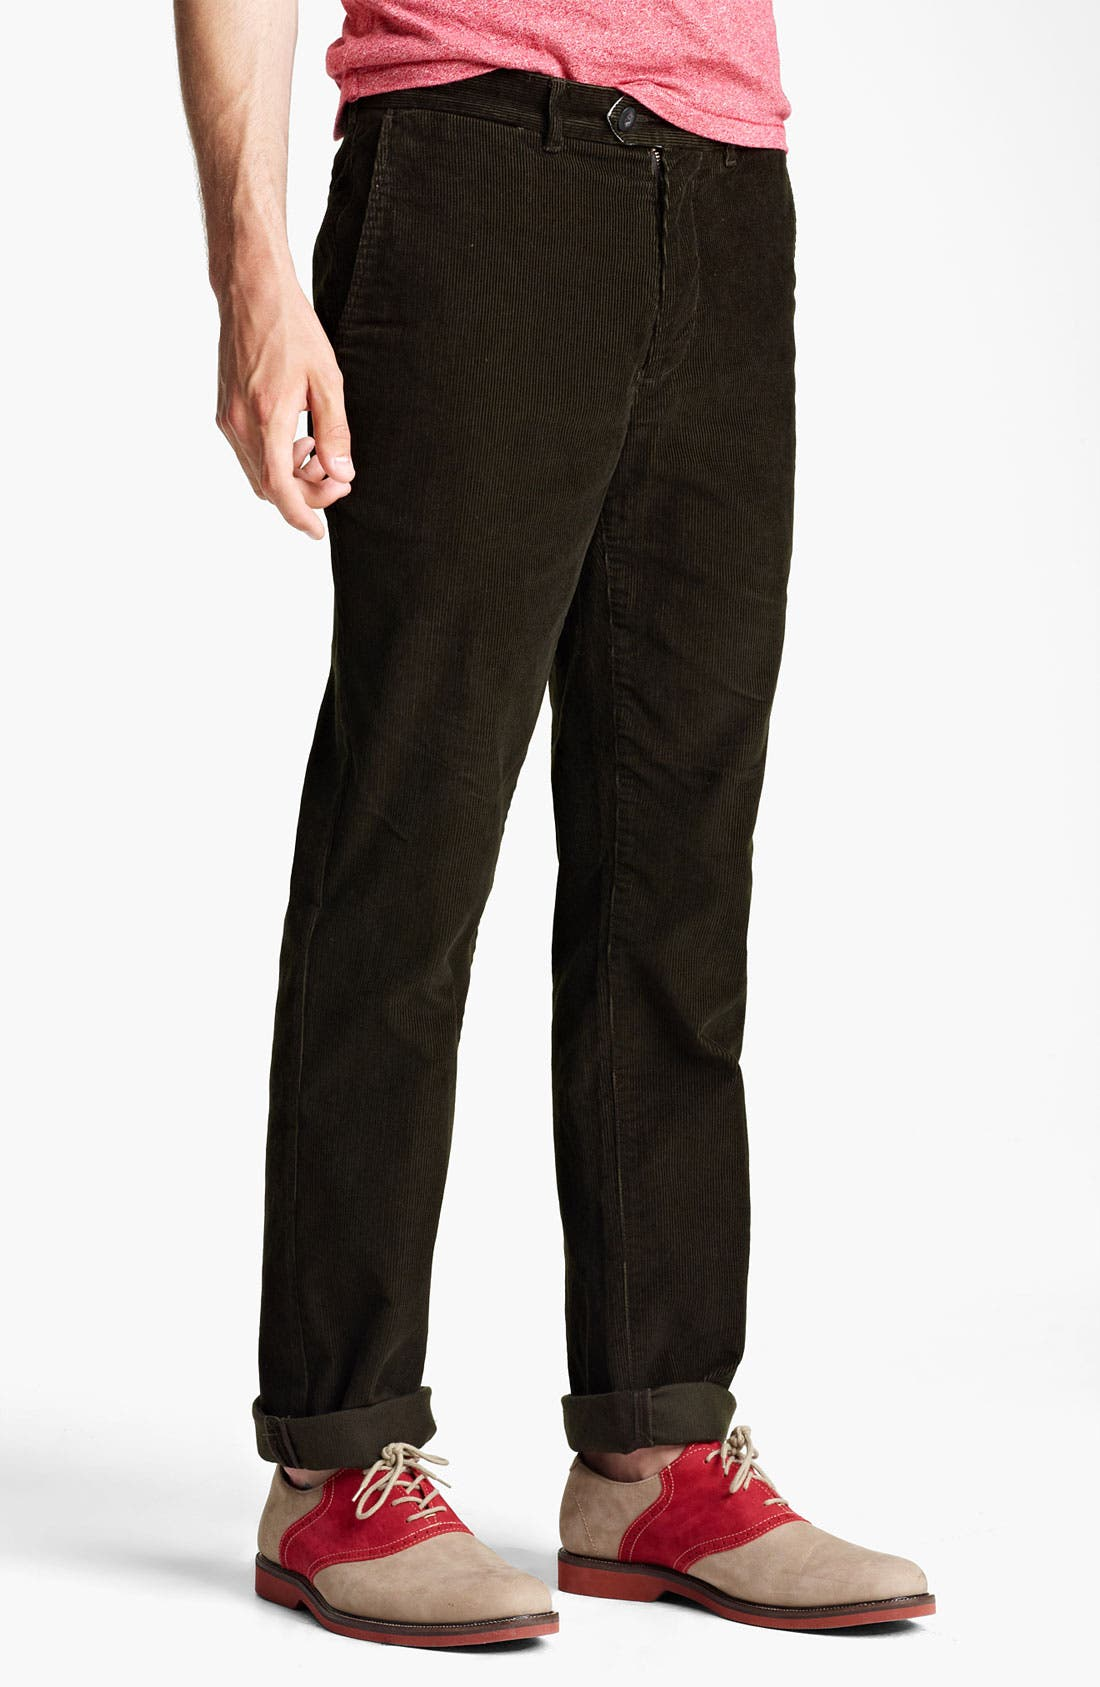 Alternate Image 1 Selected - Jack Spade 'Dolan' Straight Leg Corduroy Pants